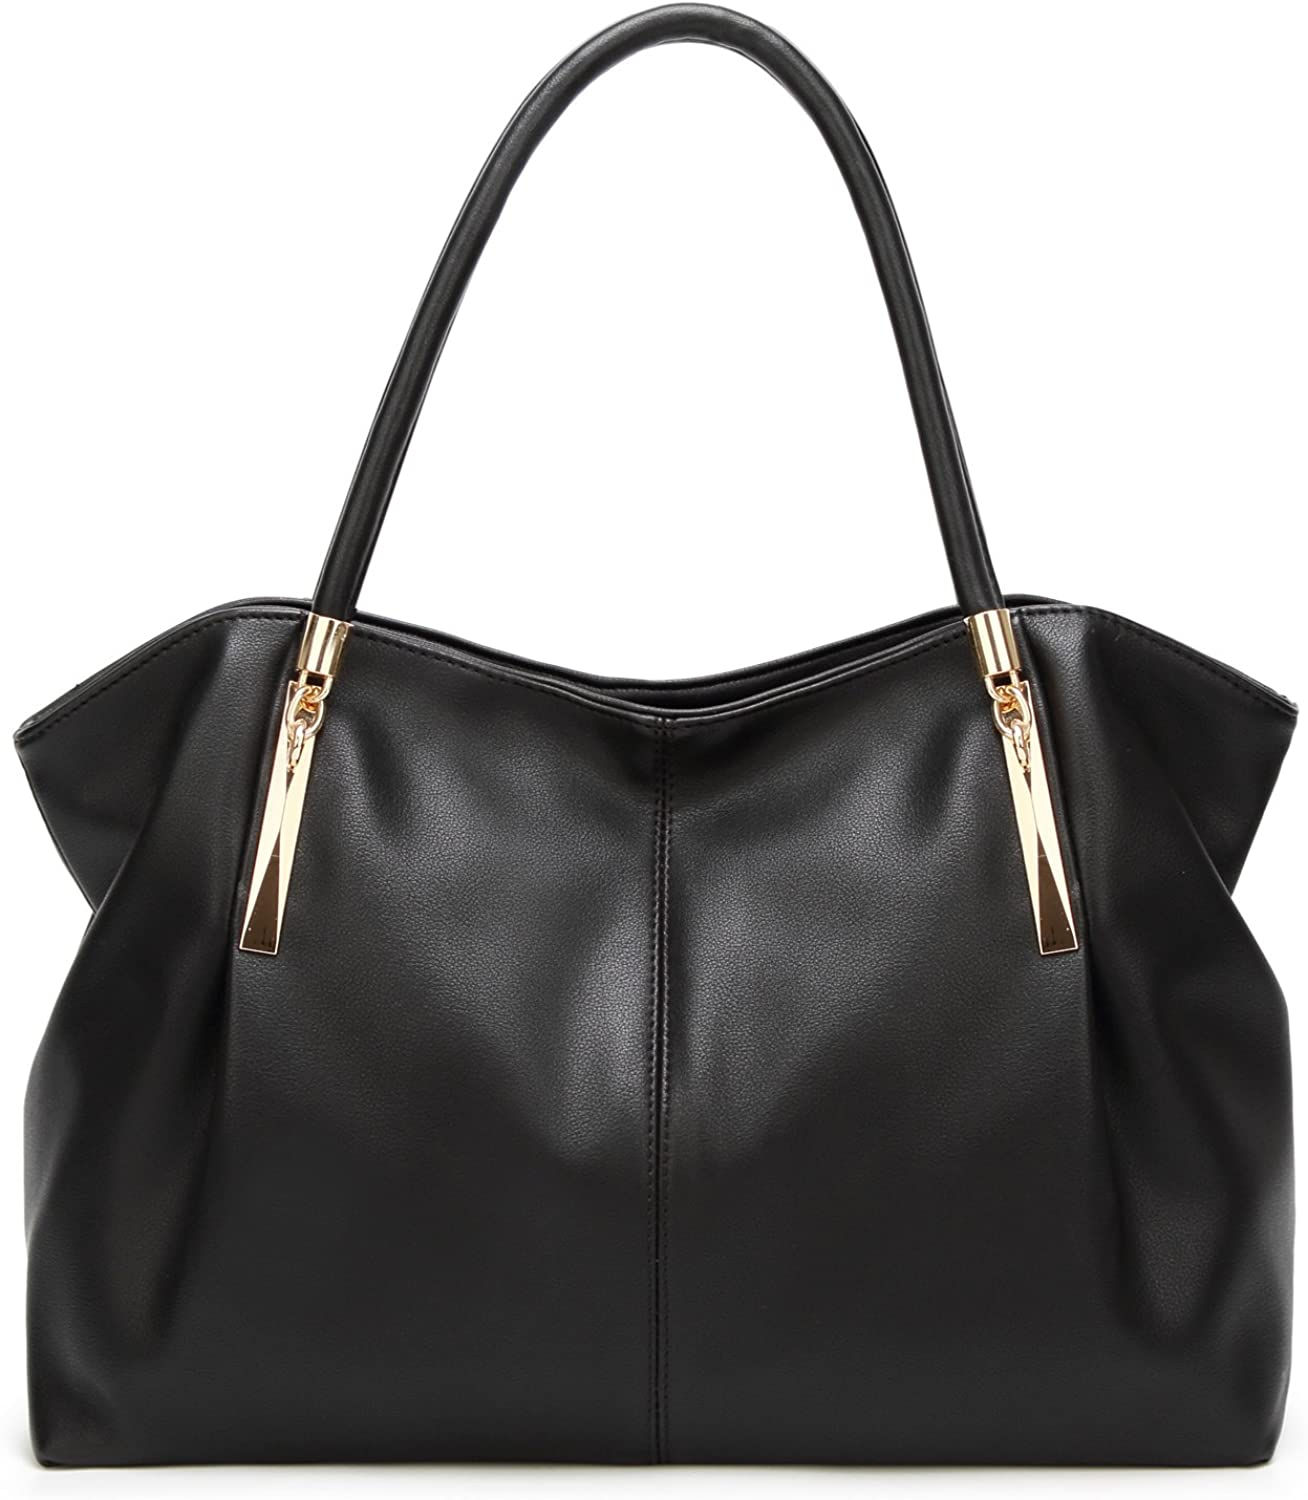 Forestfish PU Max 60% OFF Leather Ladies Factory outlet Satchel Tote Bags Bag Hand Shoulder